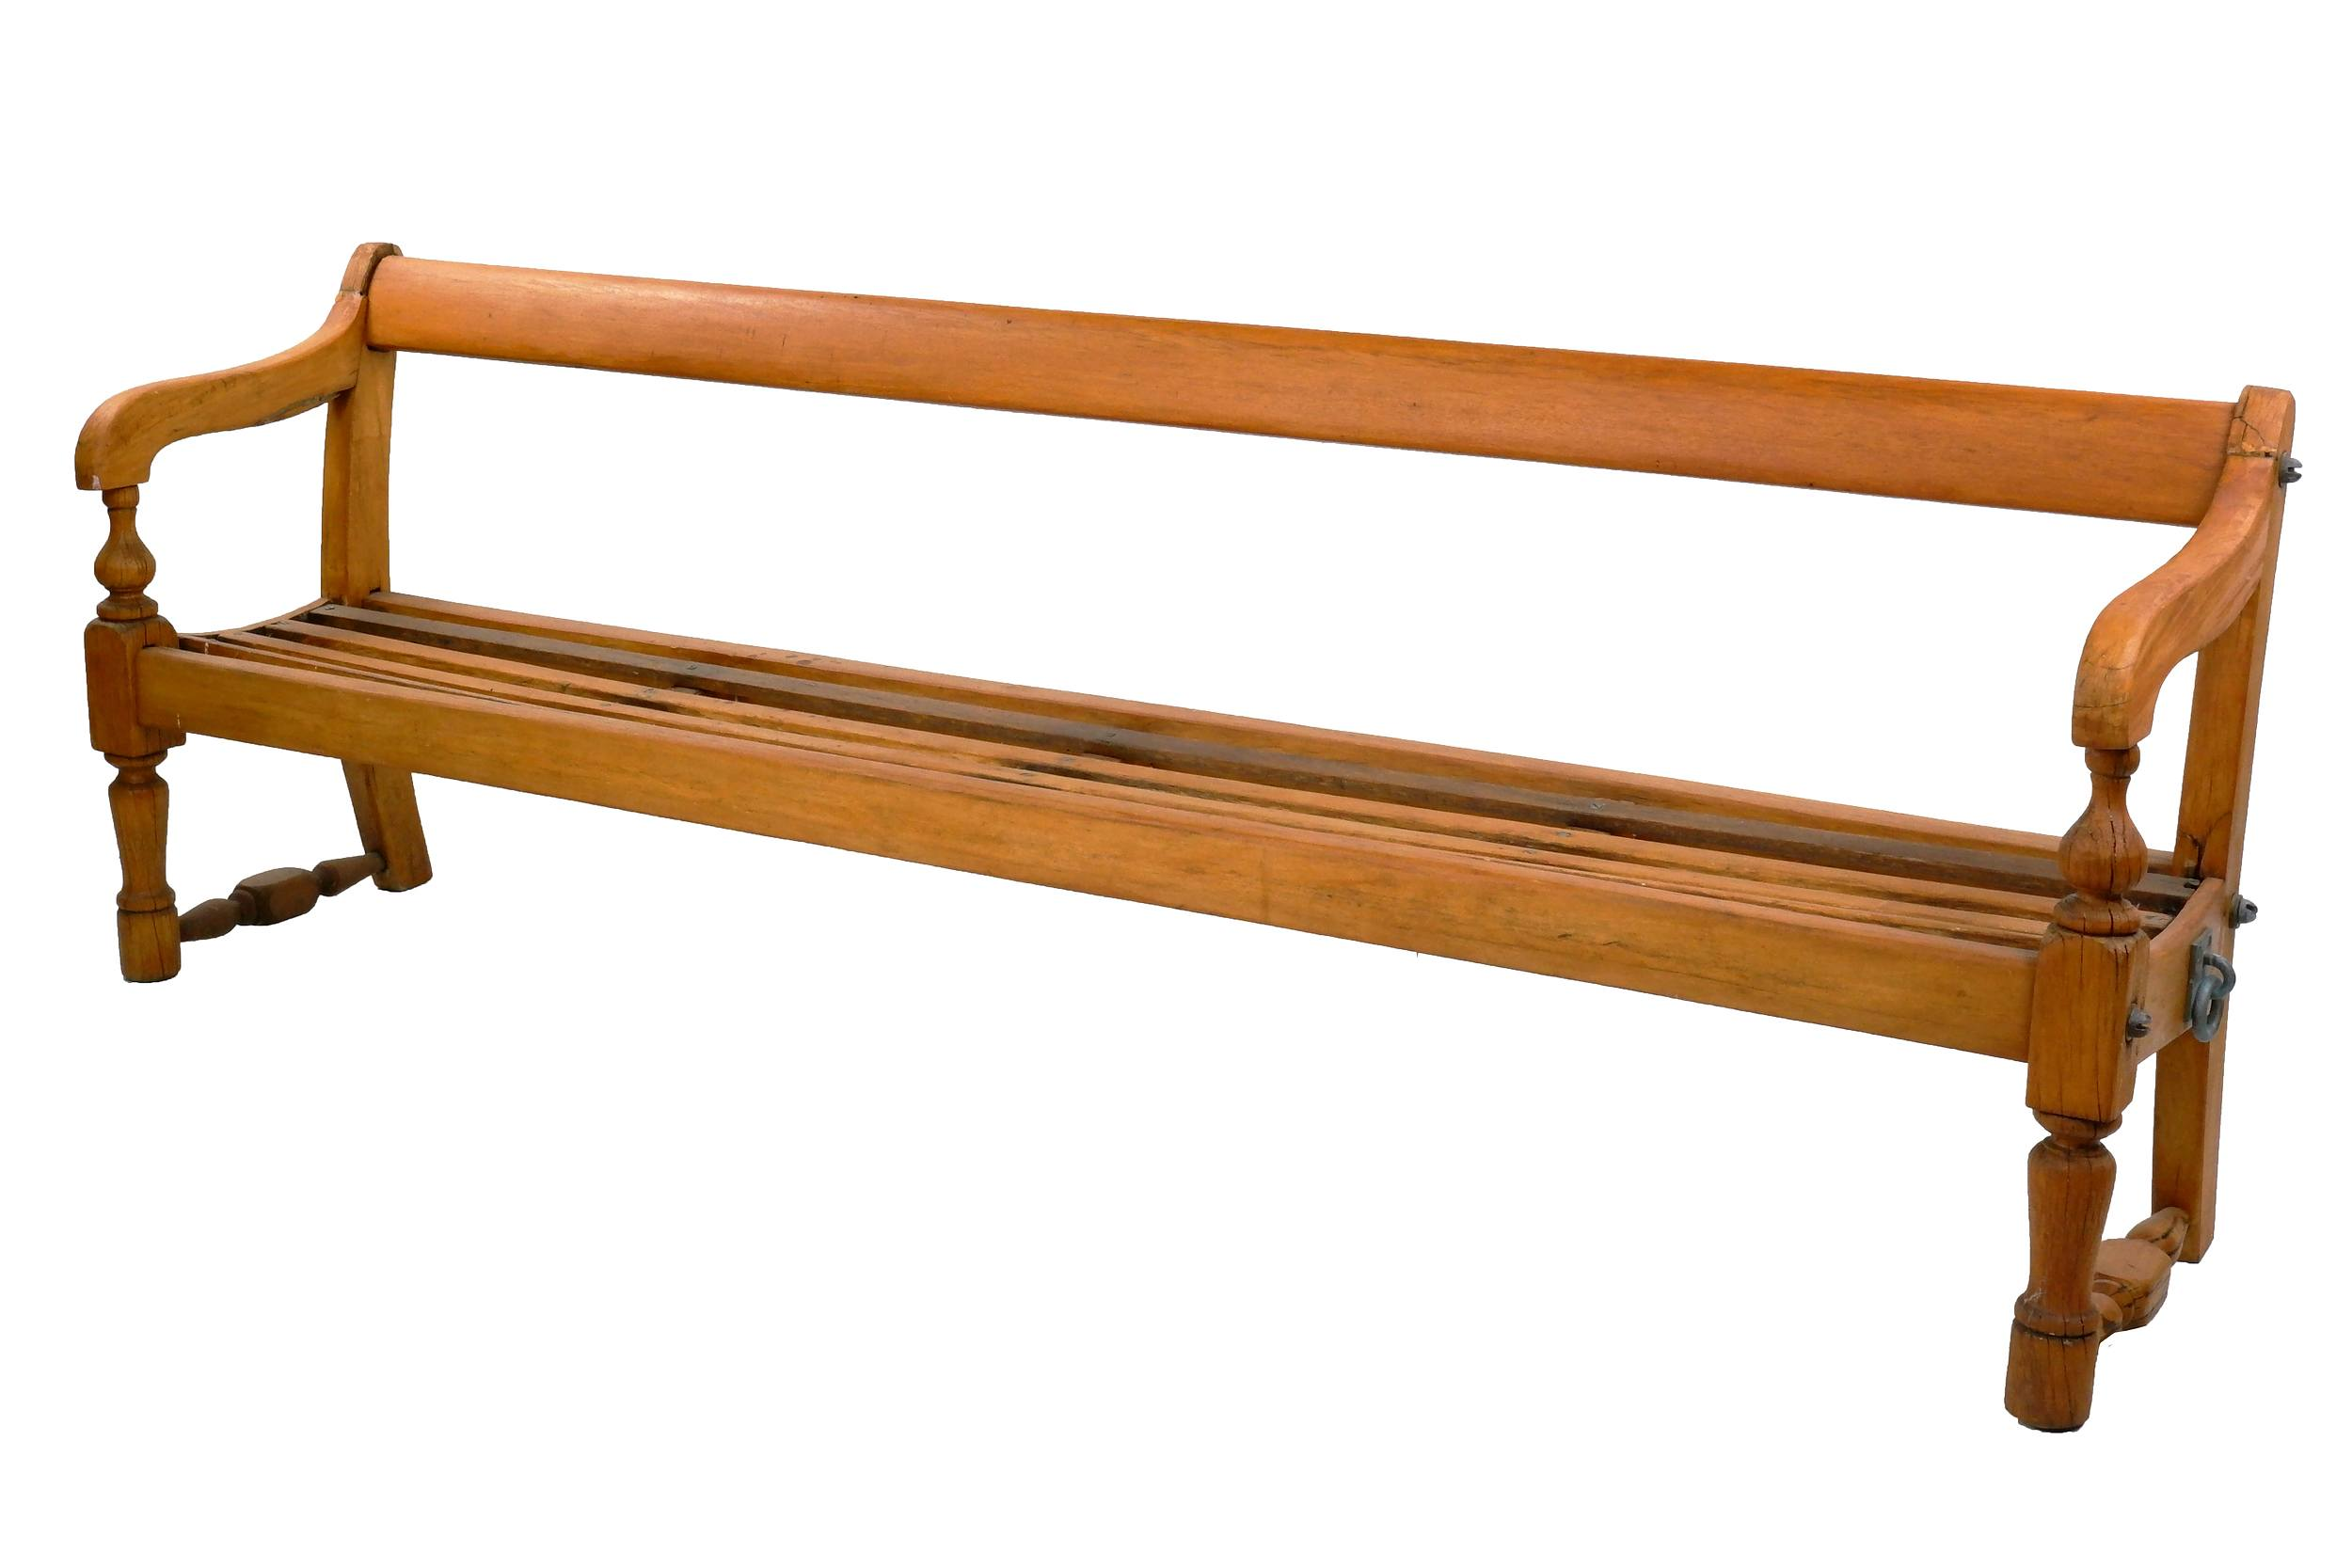 'Antique Pine Sydney Ferries Bench, with Original Metal Lashing Fittings, Early 20th Century'